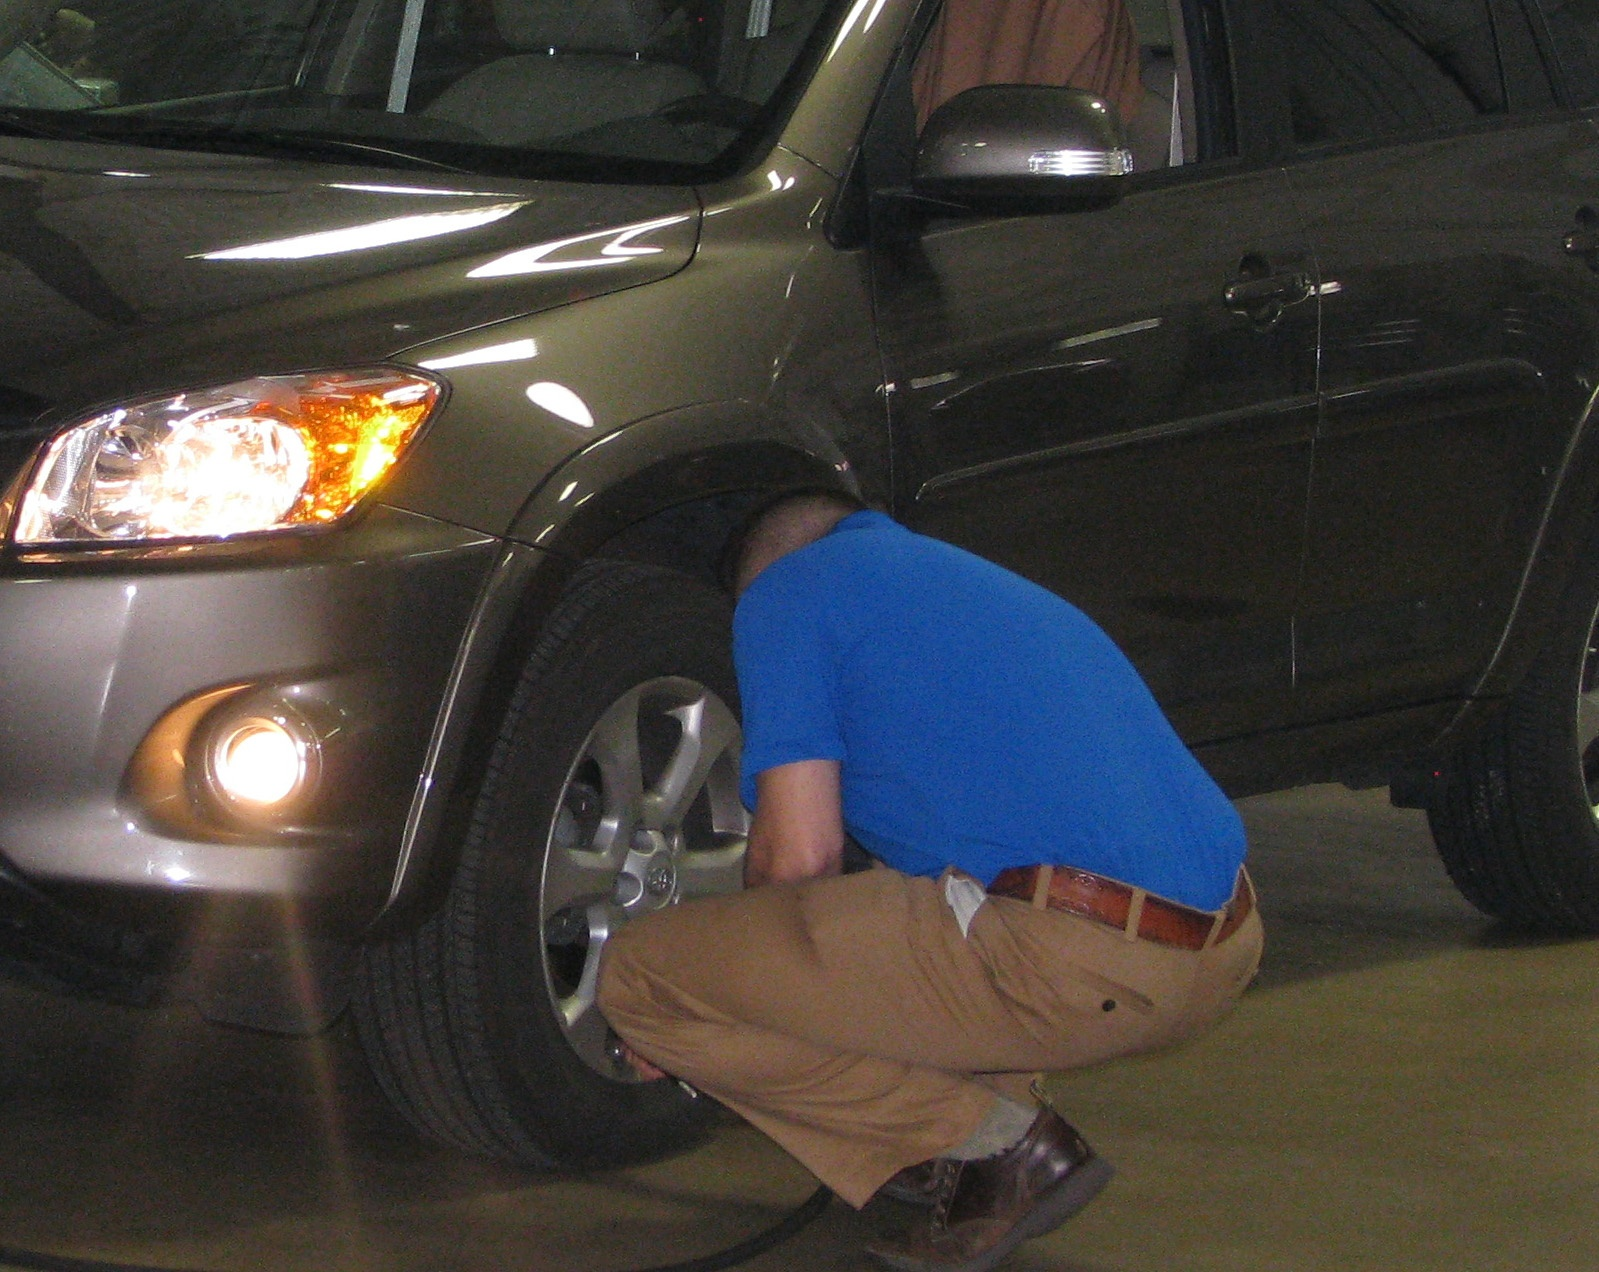 Tire Pressure Warning Light on but Tires are Properly Inflated.jpg